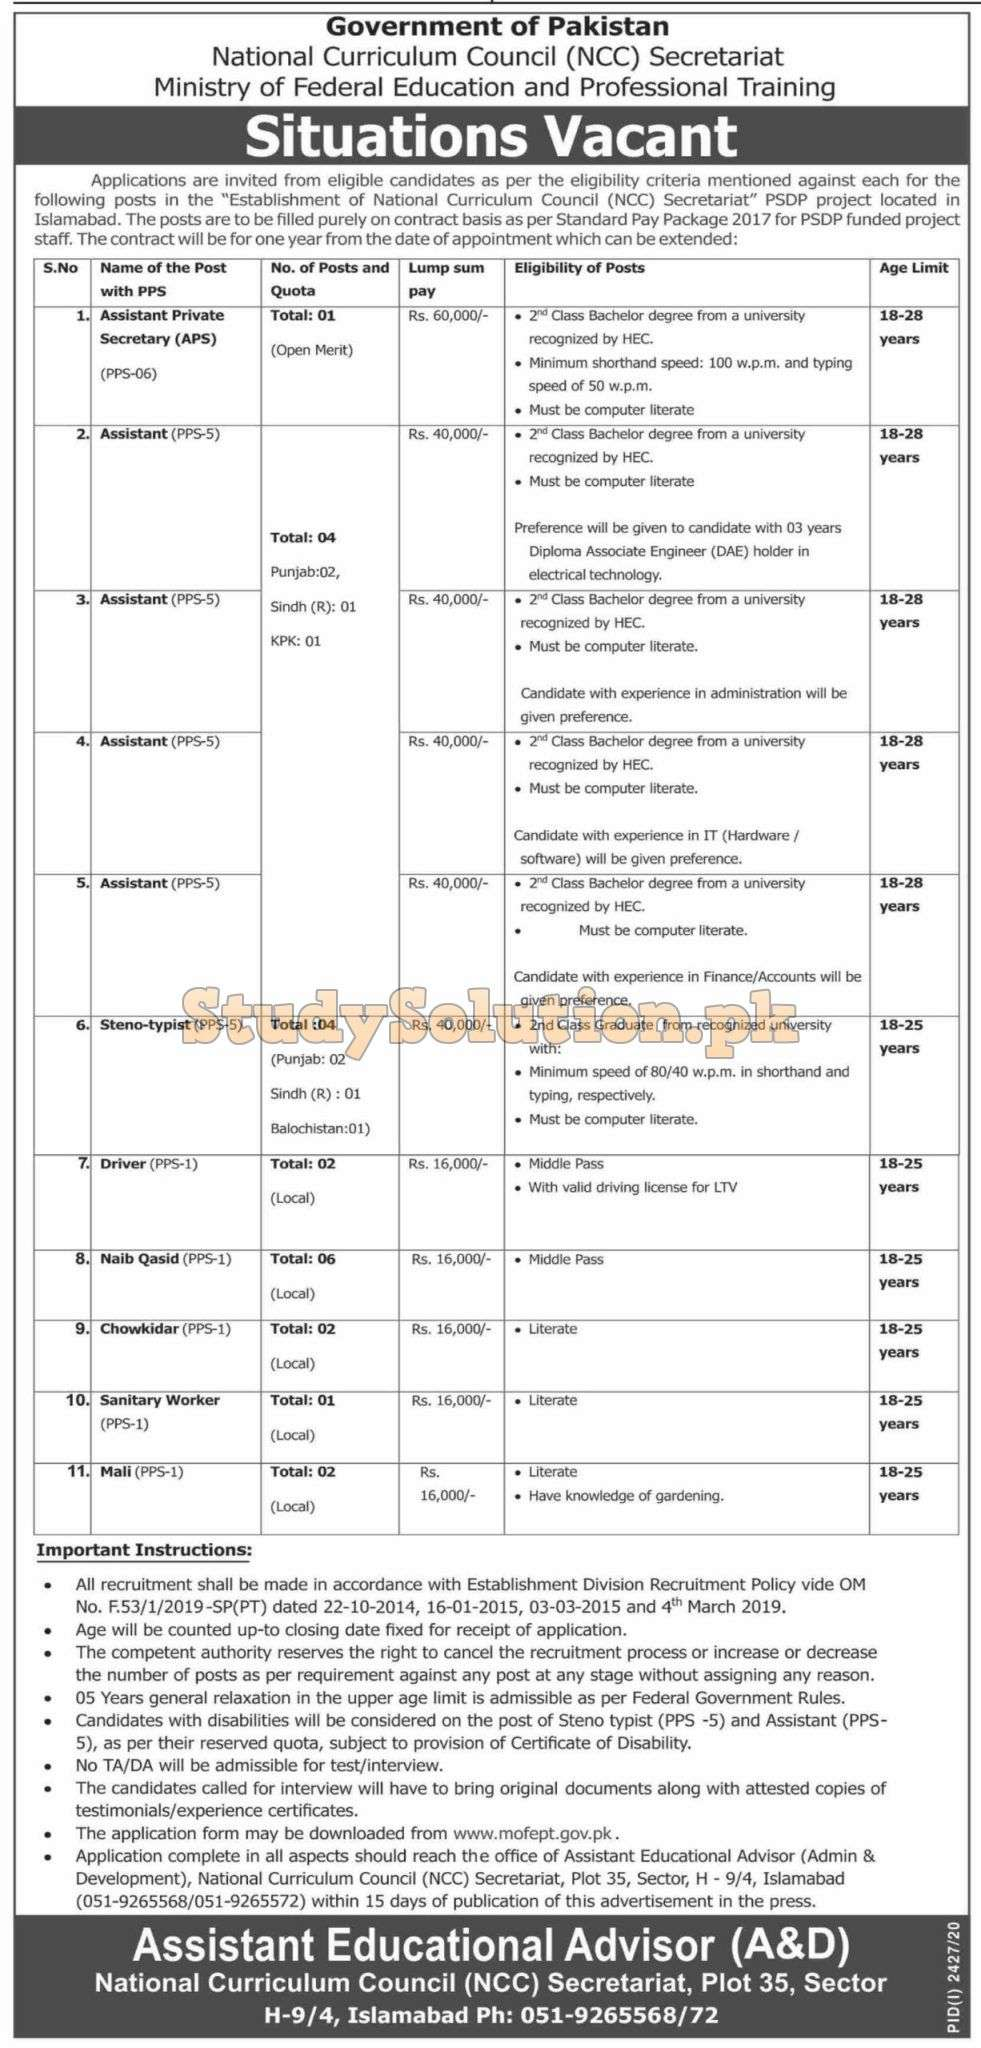 Ministry of Federal Education & Professional New Training Jobs 2020